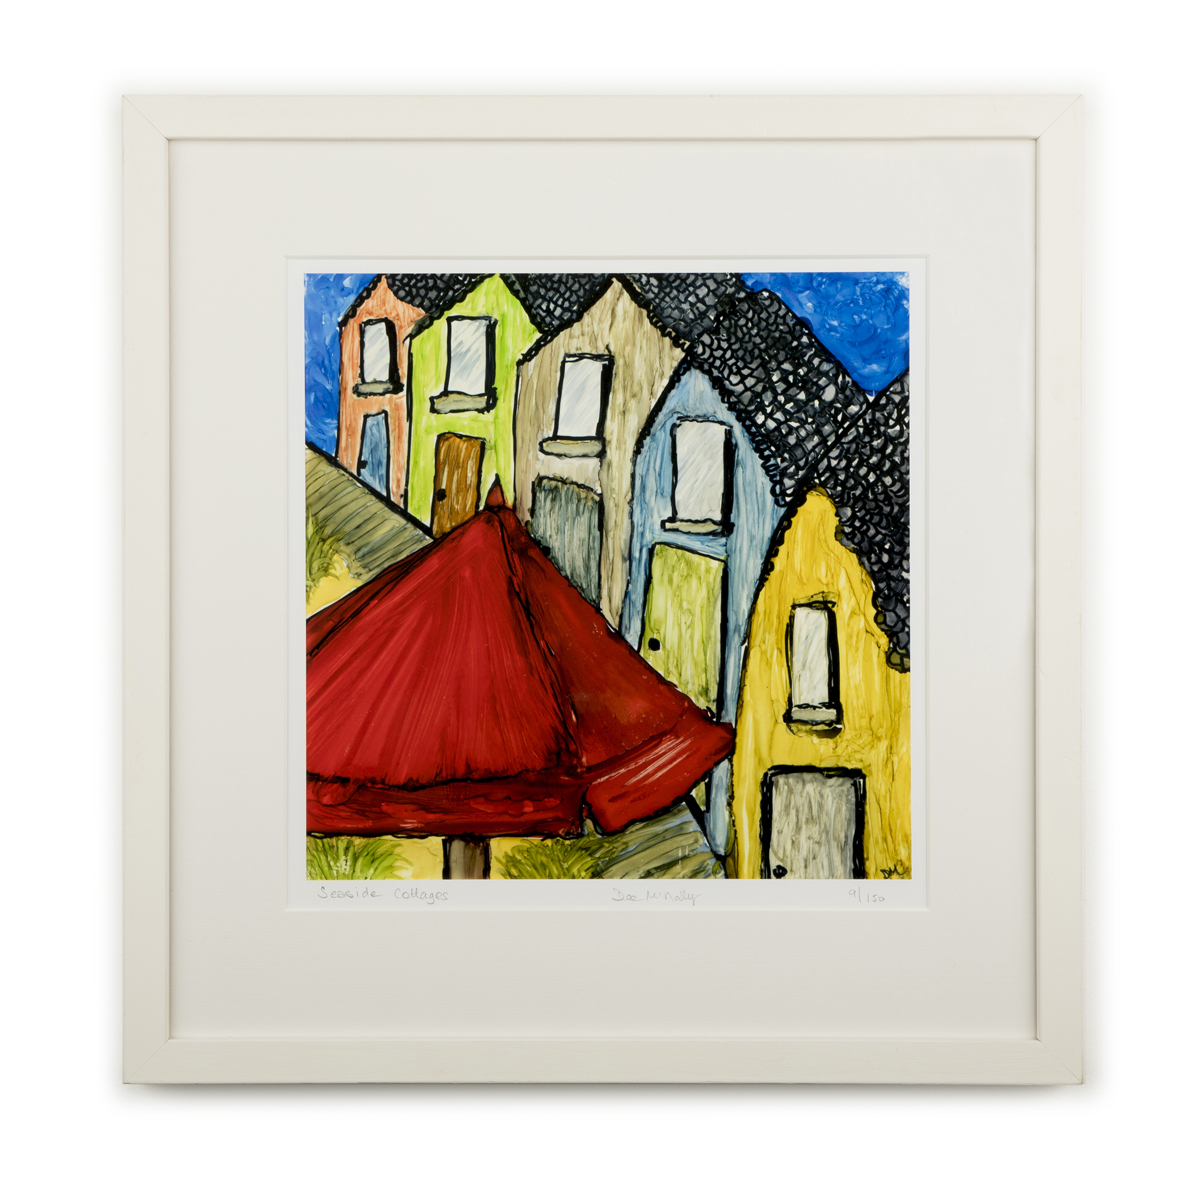 Seaside Cottages Image